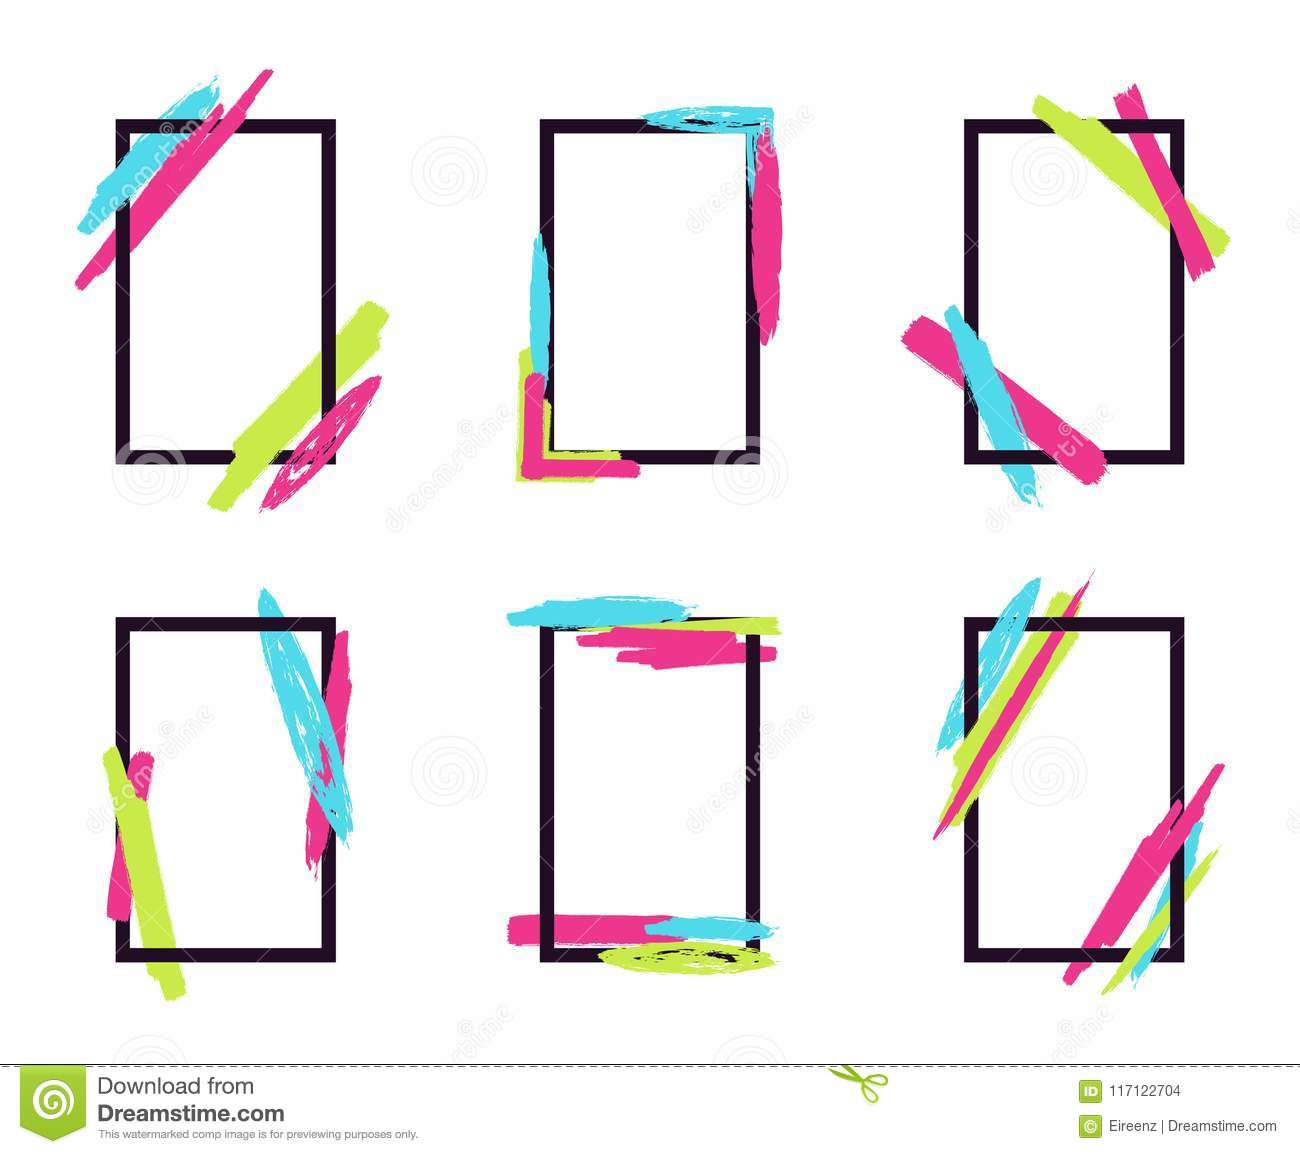 928cc41015 Vector set of stylish dynamic frames with geometric paintbrush elements.  Can be used for business cards